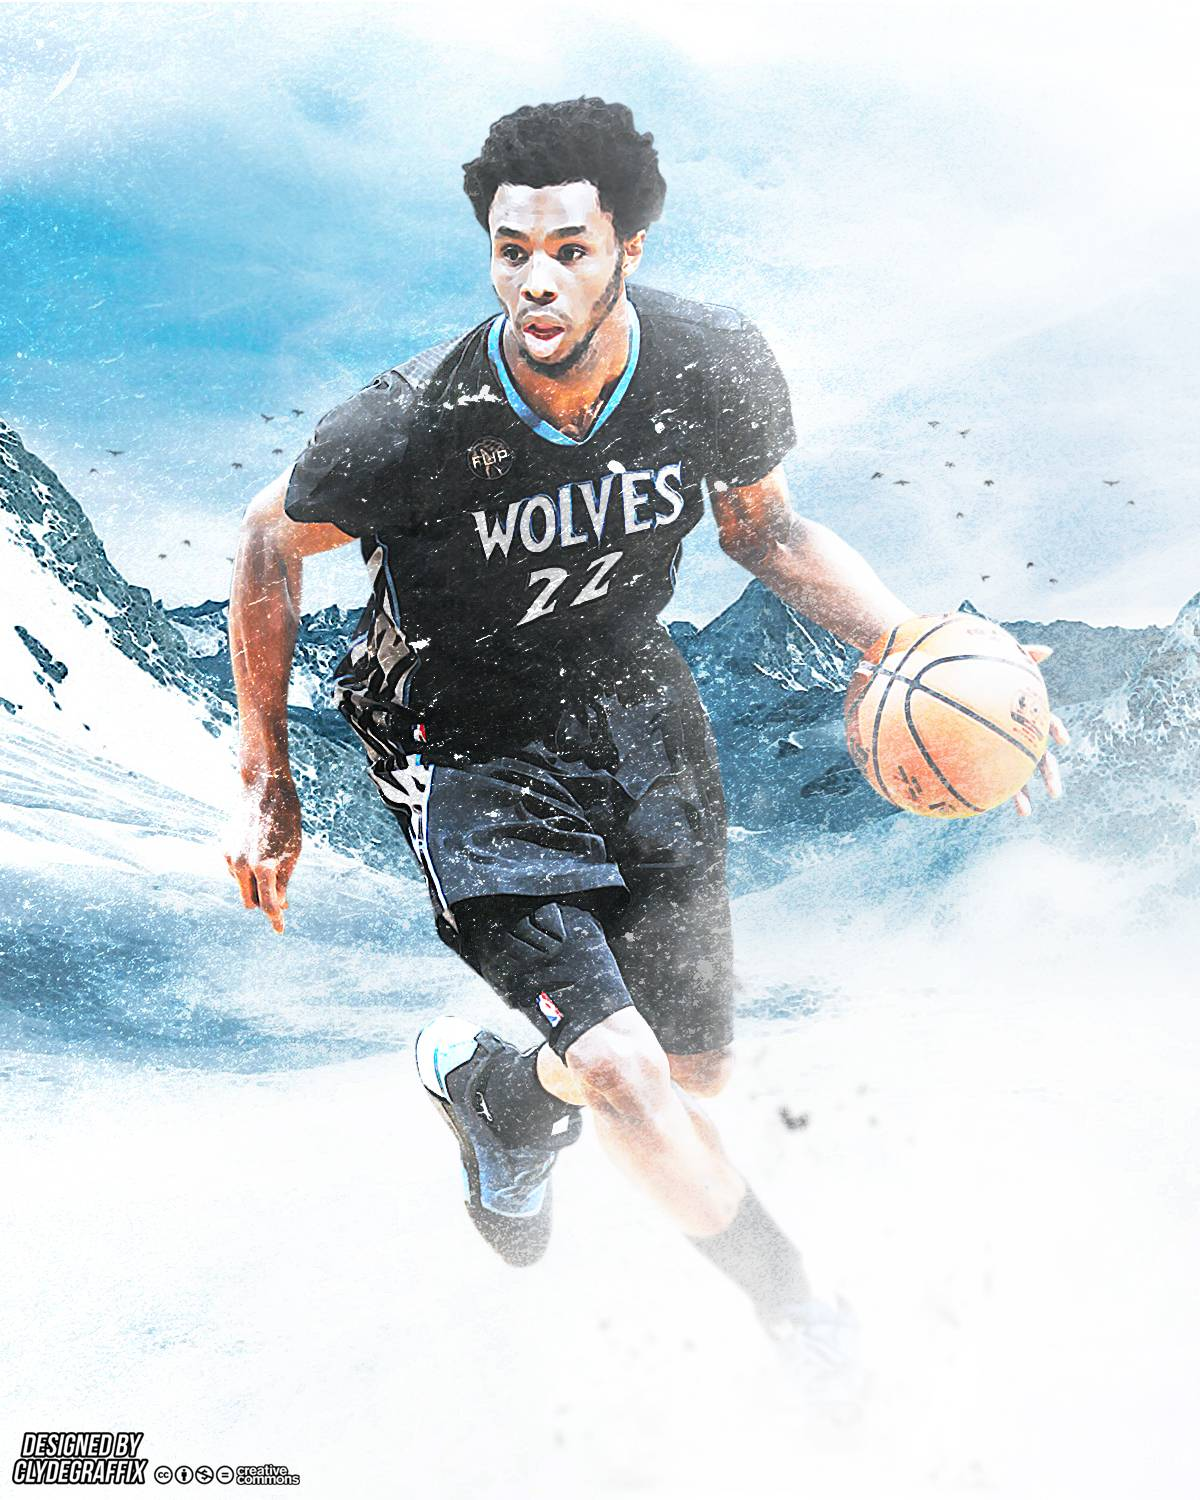 Poster I Made Of Andrew Wiggins That Thought You Guys Might Like